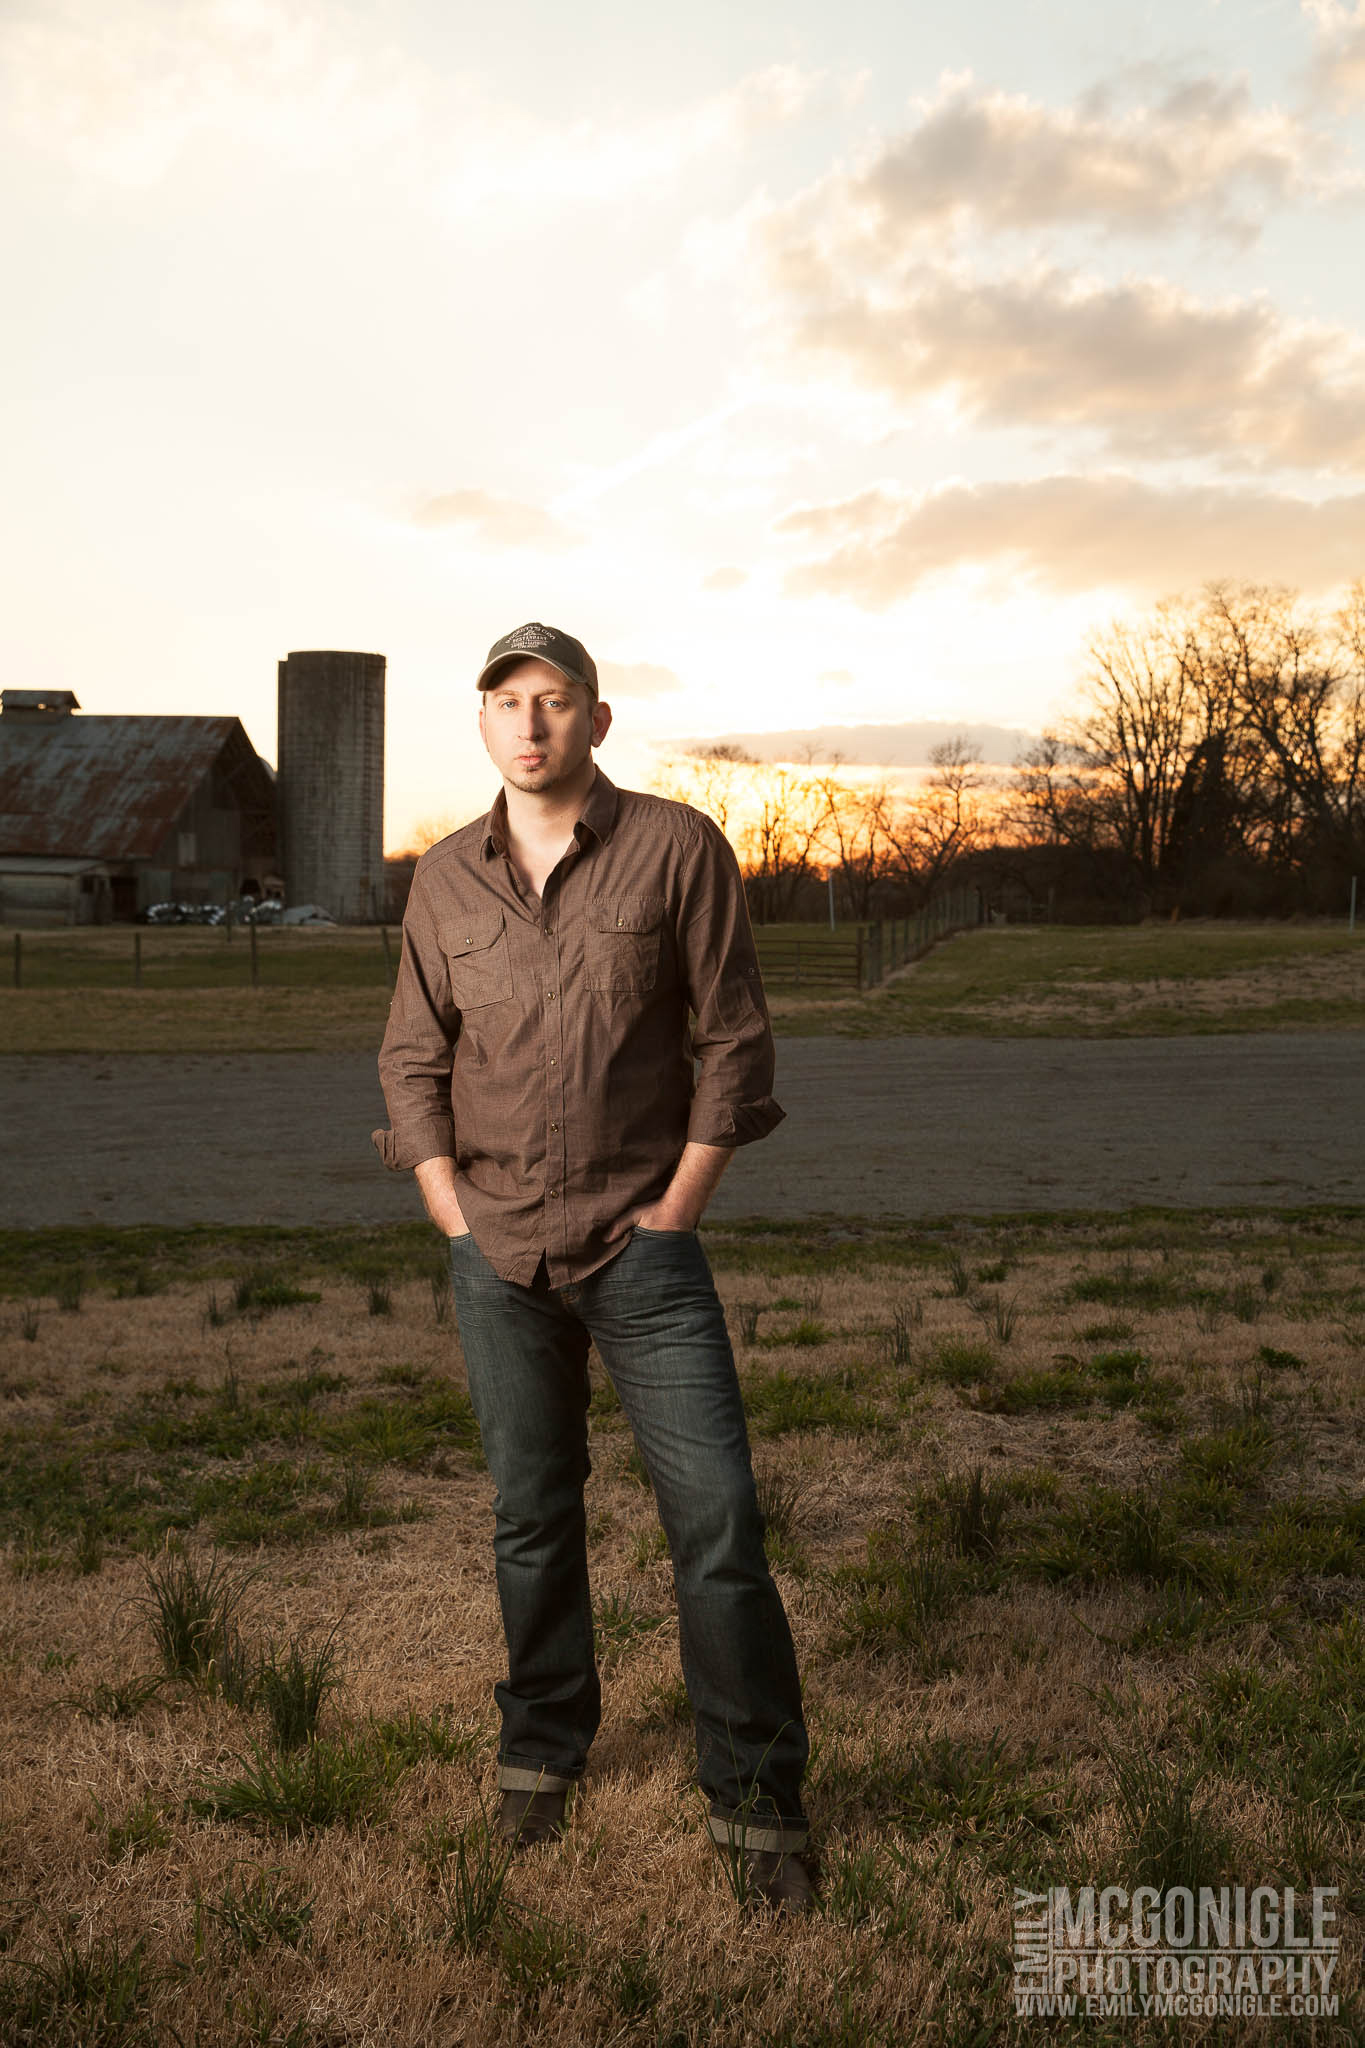 portrait in a farm field at sunset